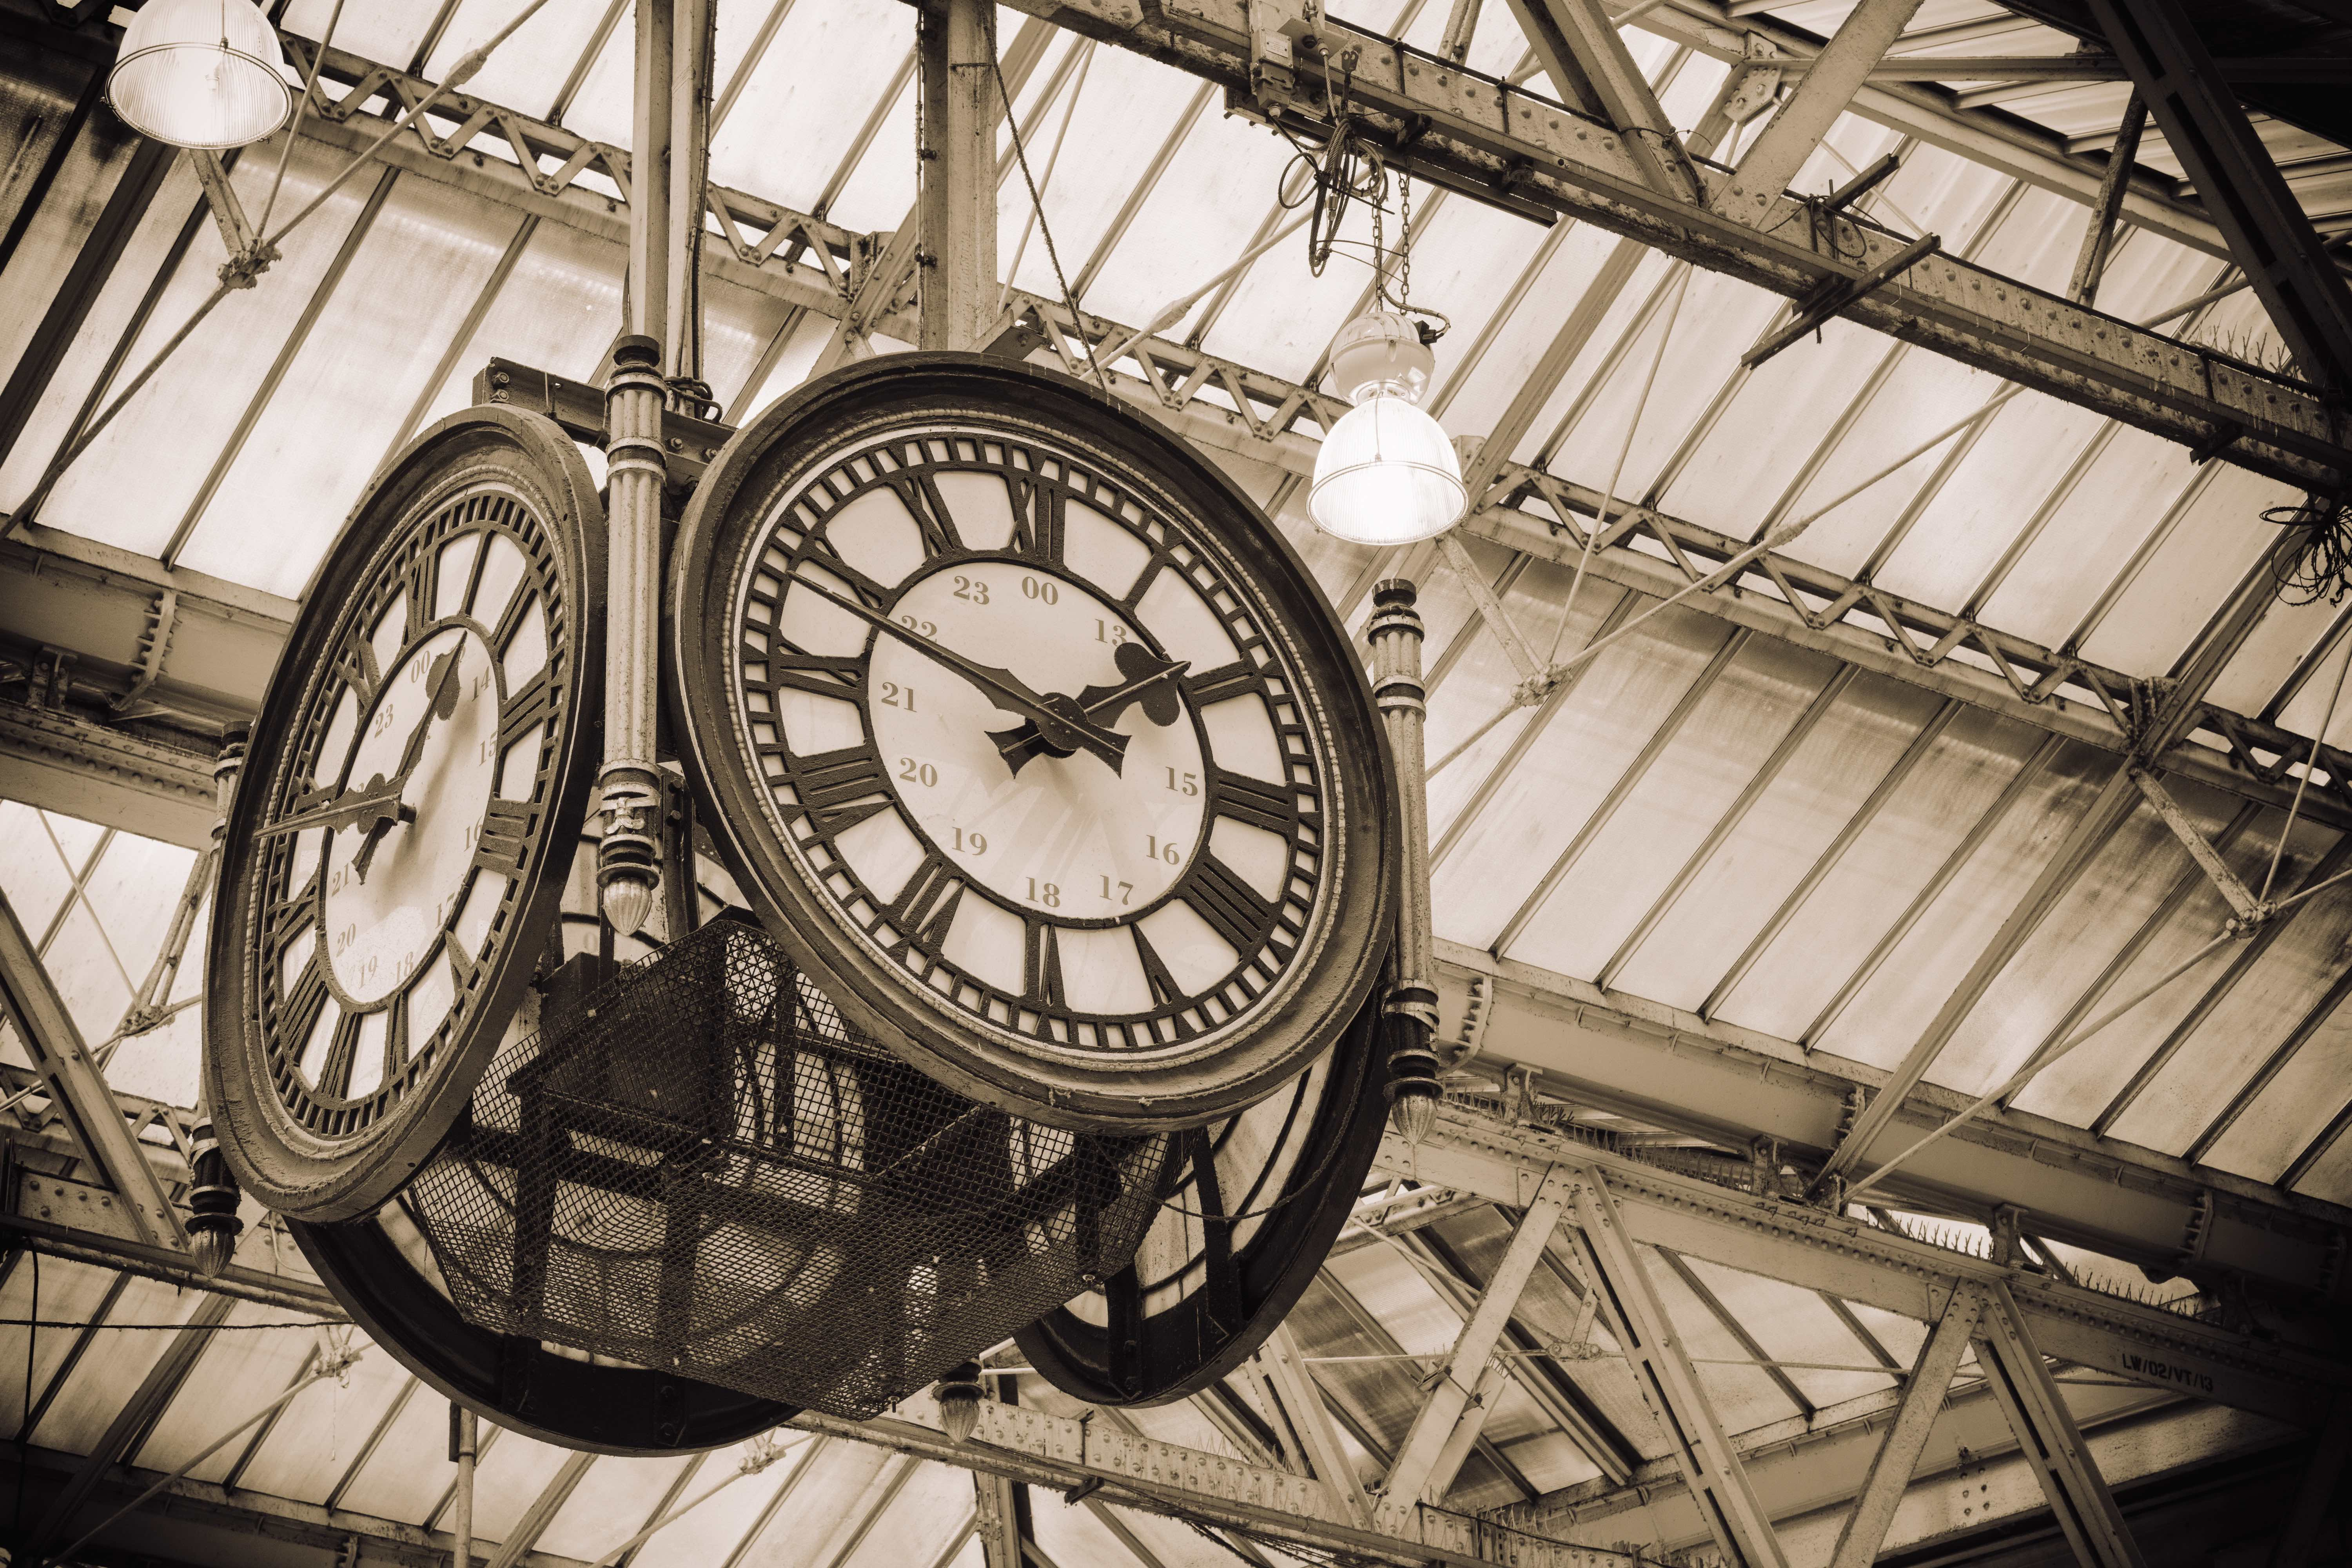 Old clock in Waterloo Station, London